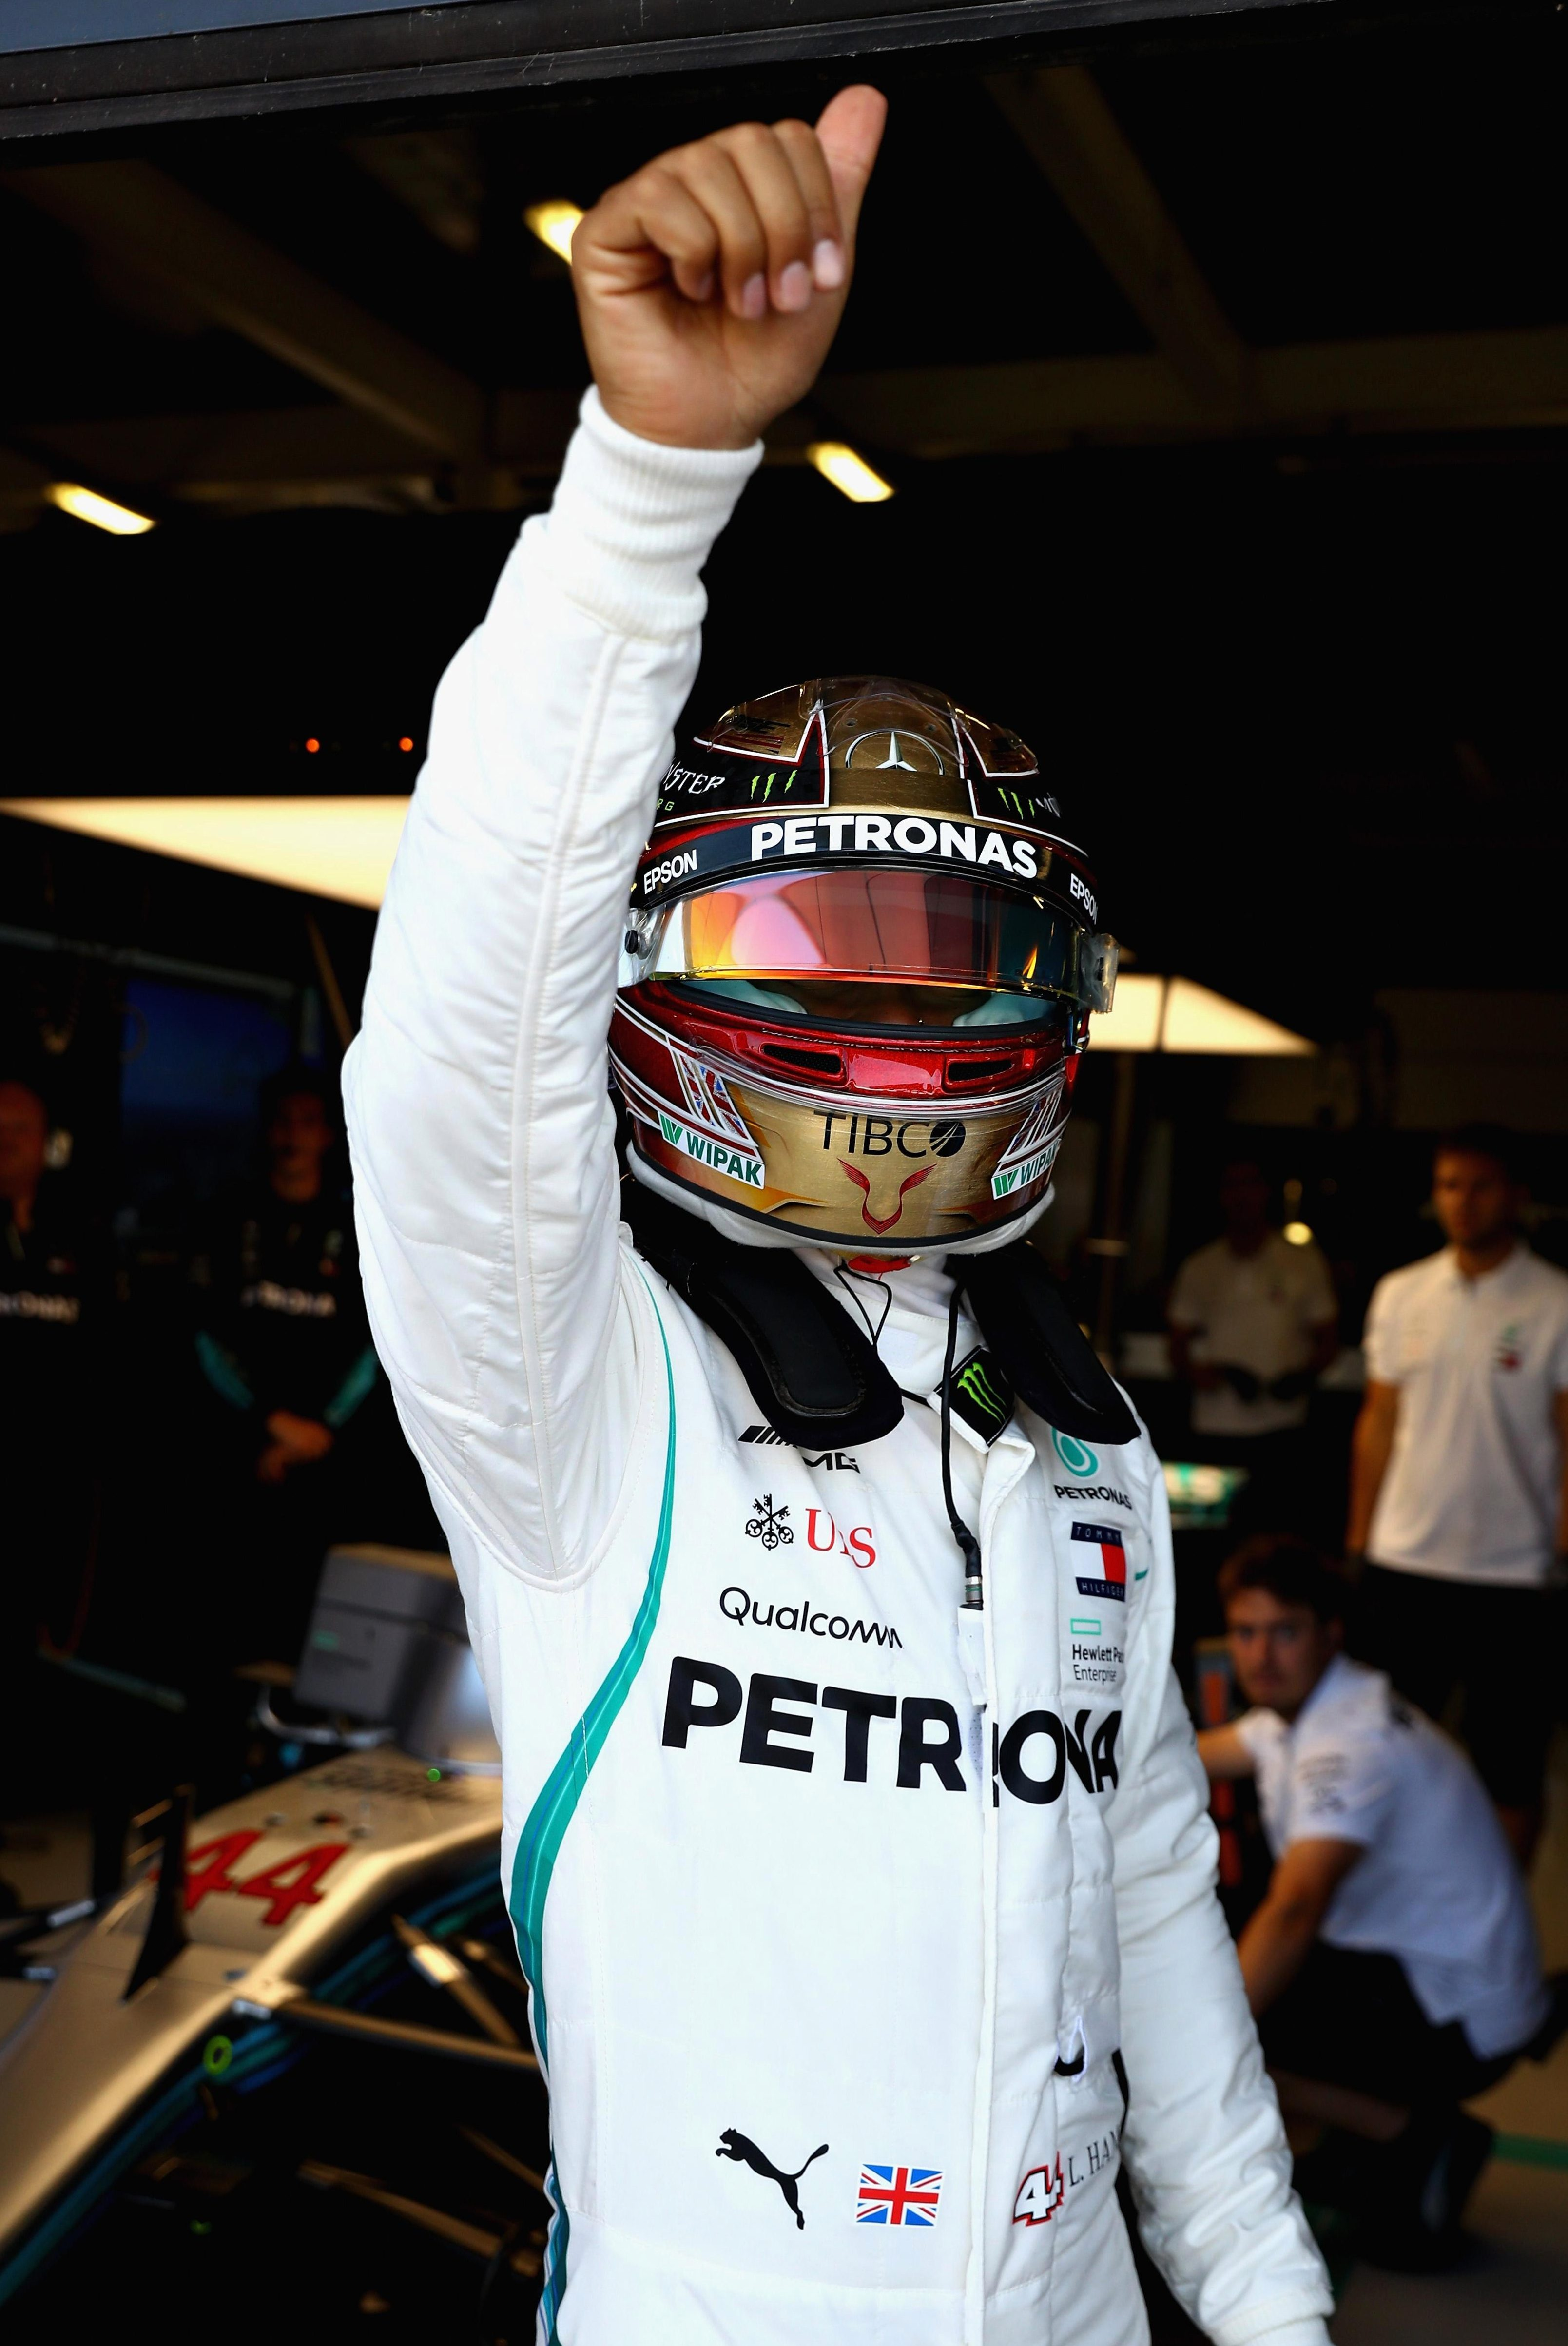 Lewis Hamilton waves to his home support as he secured a place on the front of the grid for the British GP